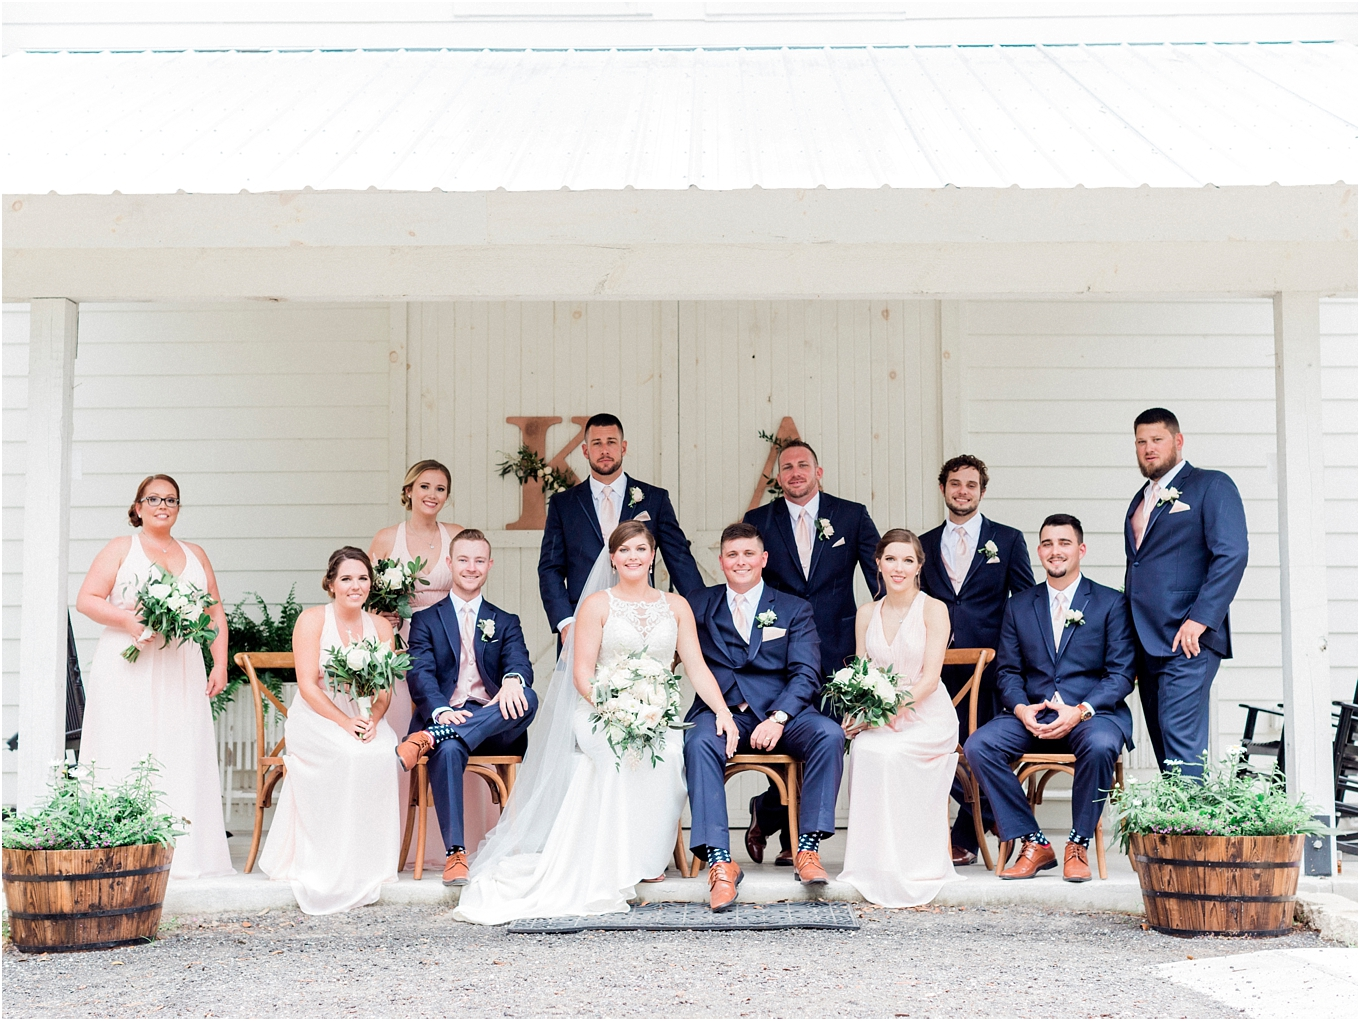 Lisa Silva Photography- Ponte Vedra Beach, St. Augustine and Jacksonville, Florida Fine Art Film Wedding and Boudoir Photography- Elegant Blush and Navy Wedding at Chandler Oaks Barn in St. Augustine, Florida_0072.jpg